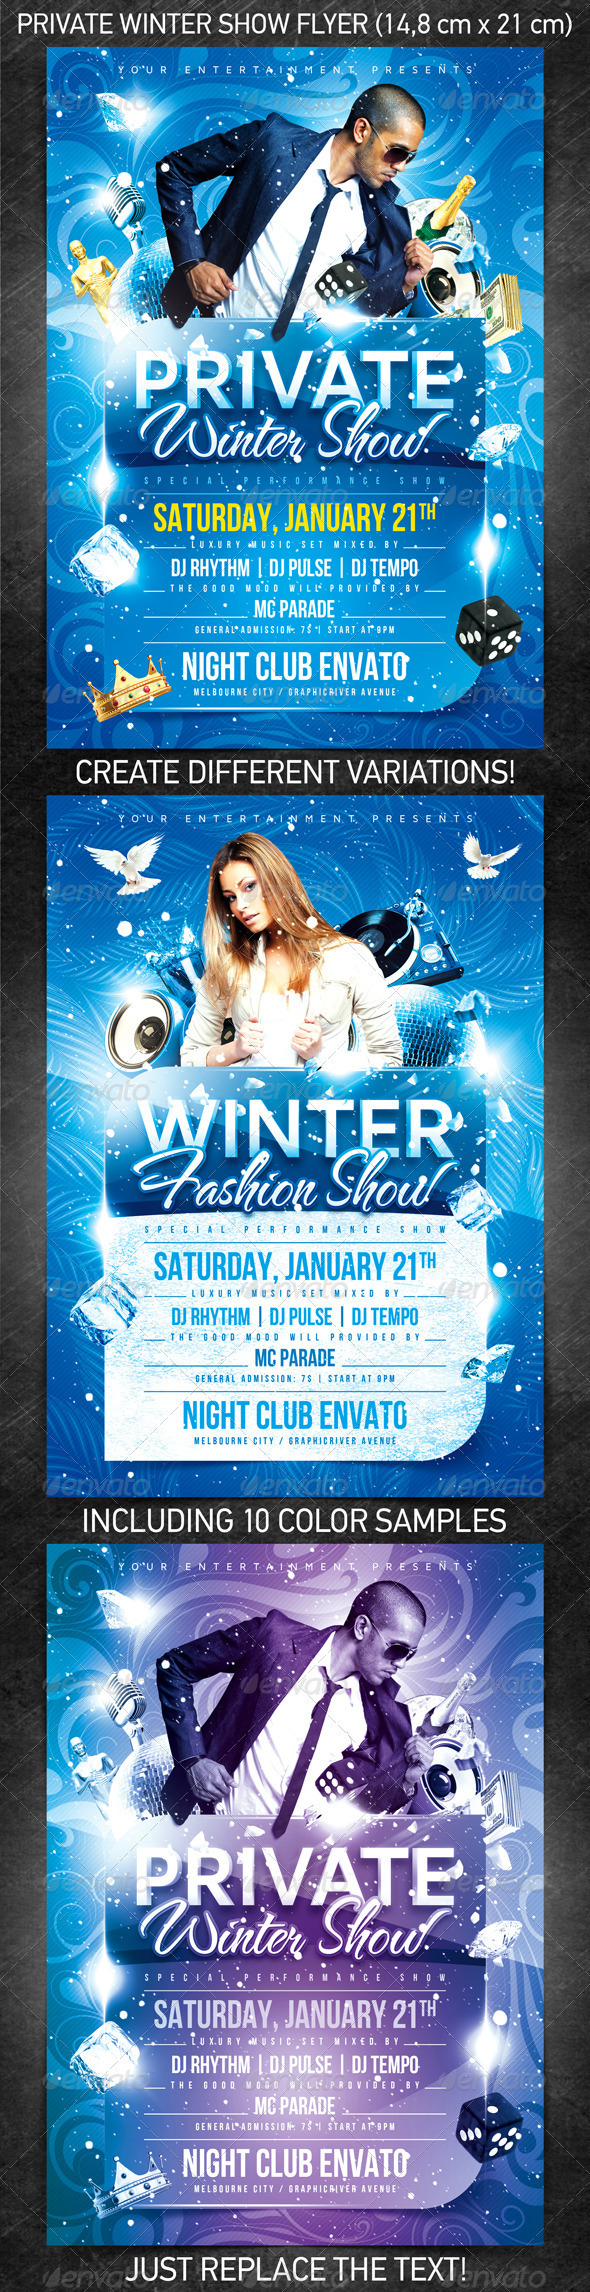 private winter show flyer psd template on behance